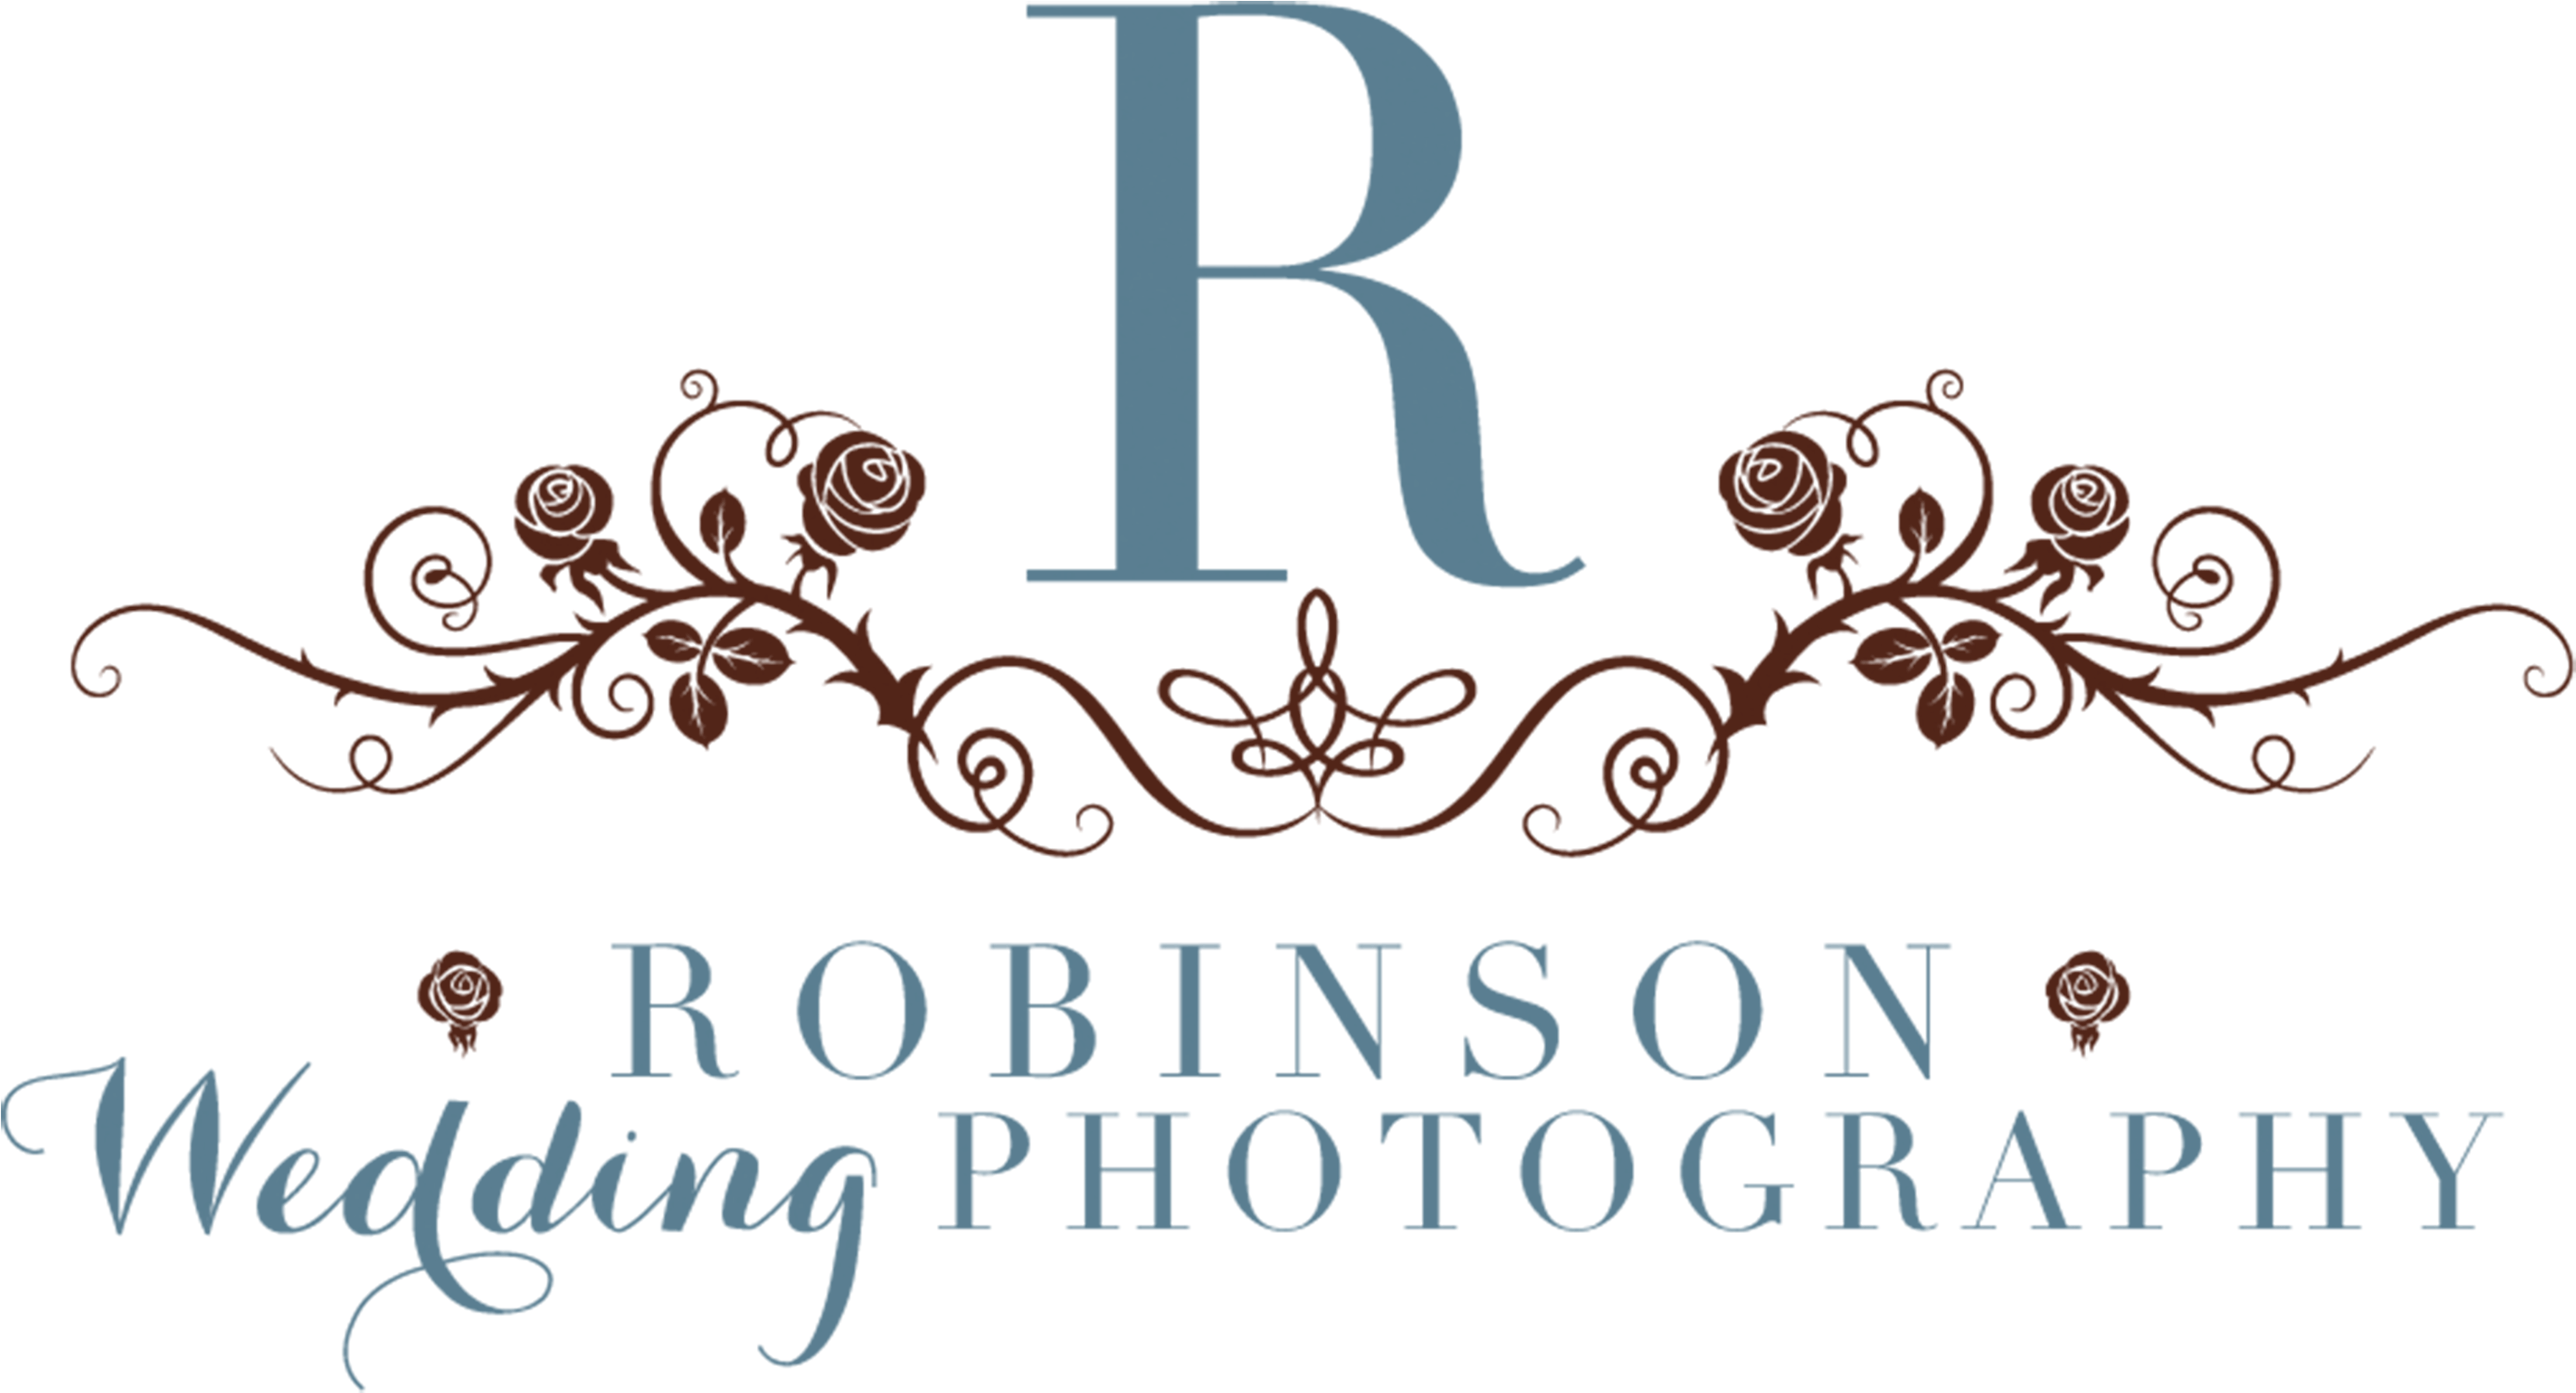 Download Robinson Wedding Photography Massachusetts.